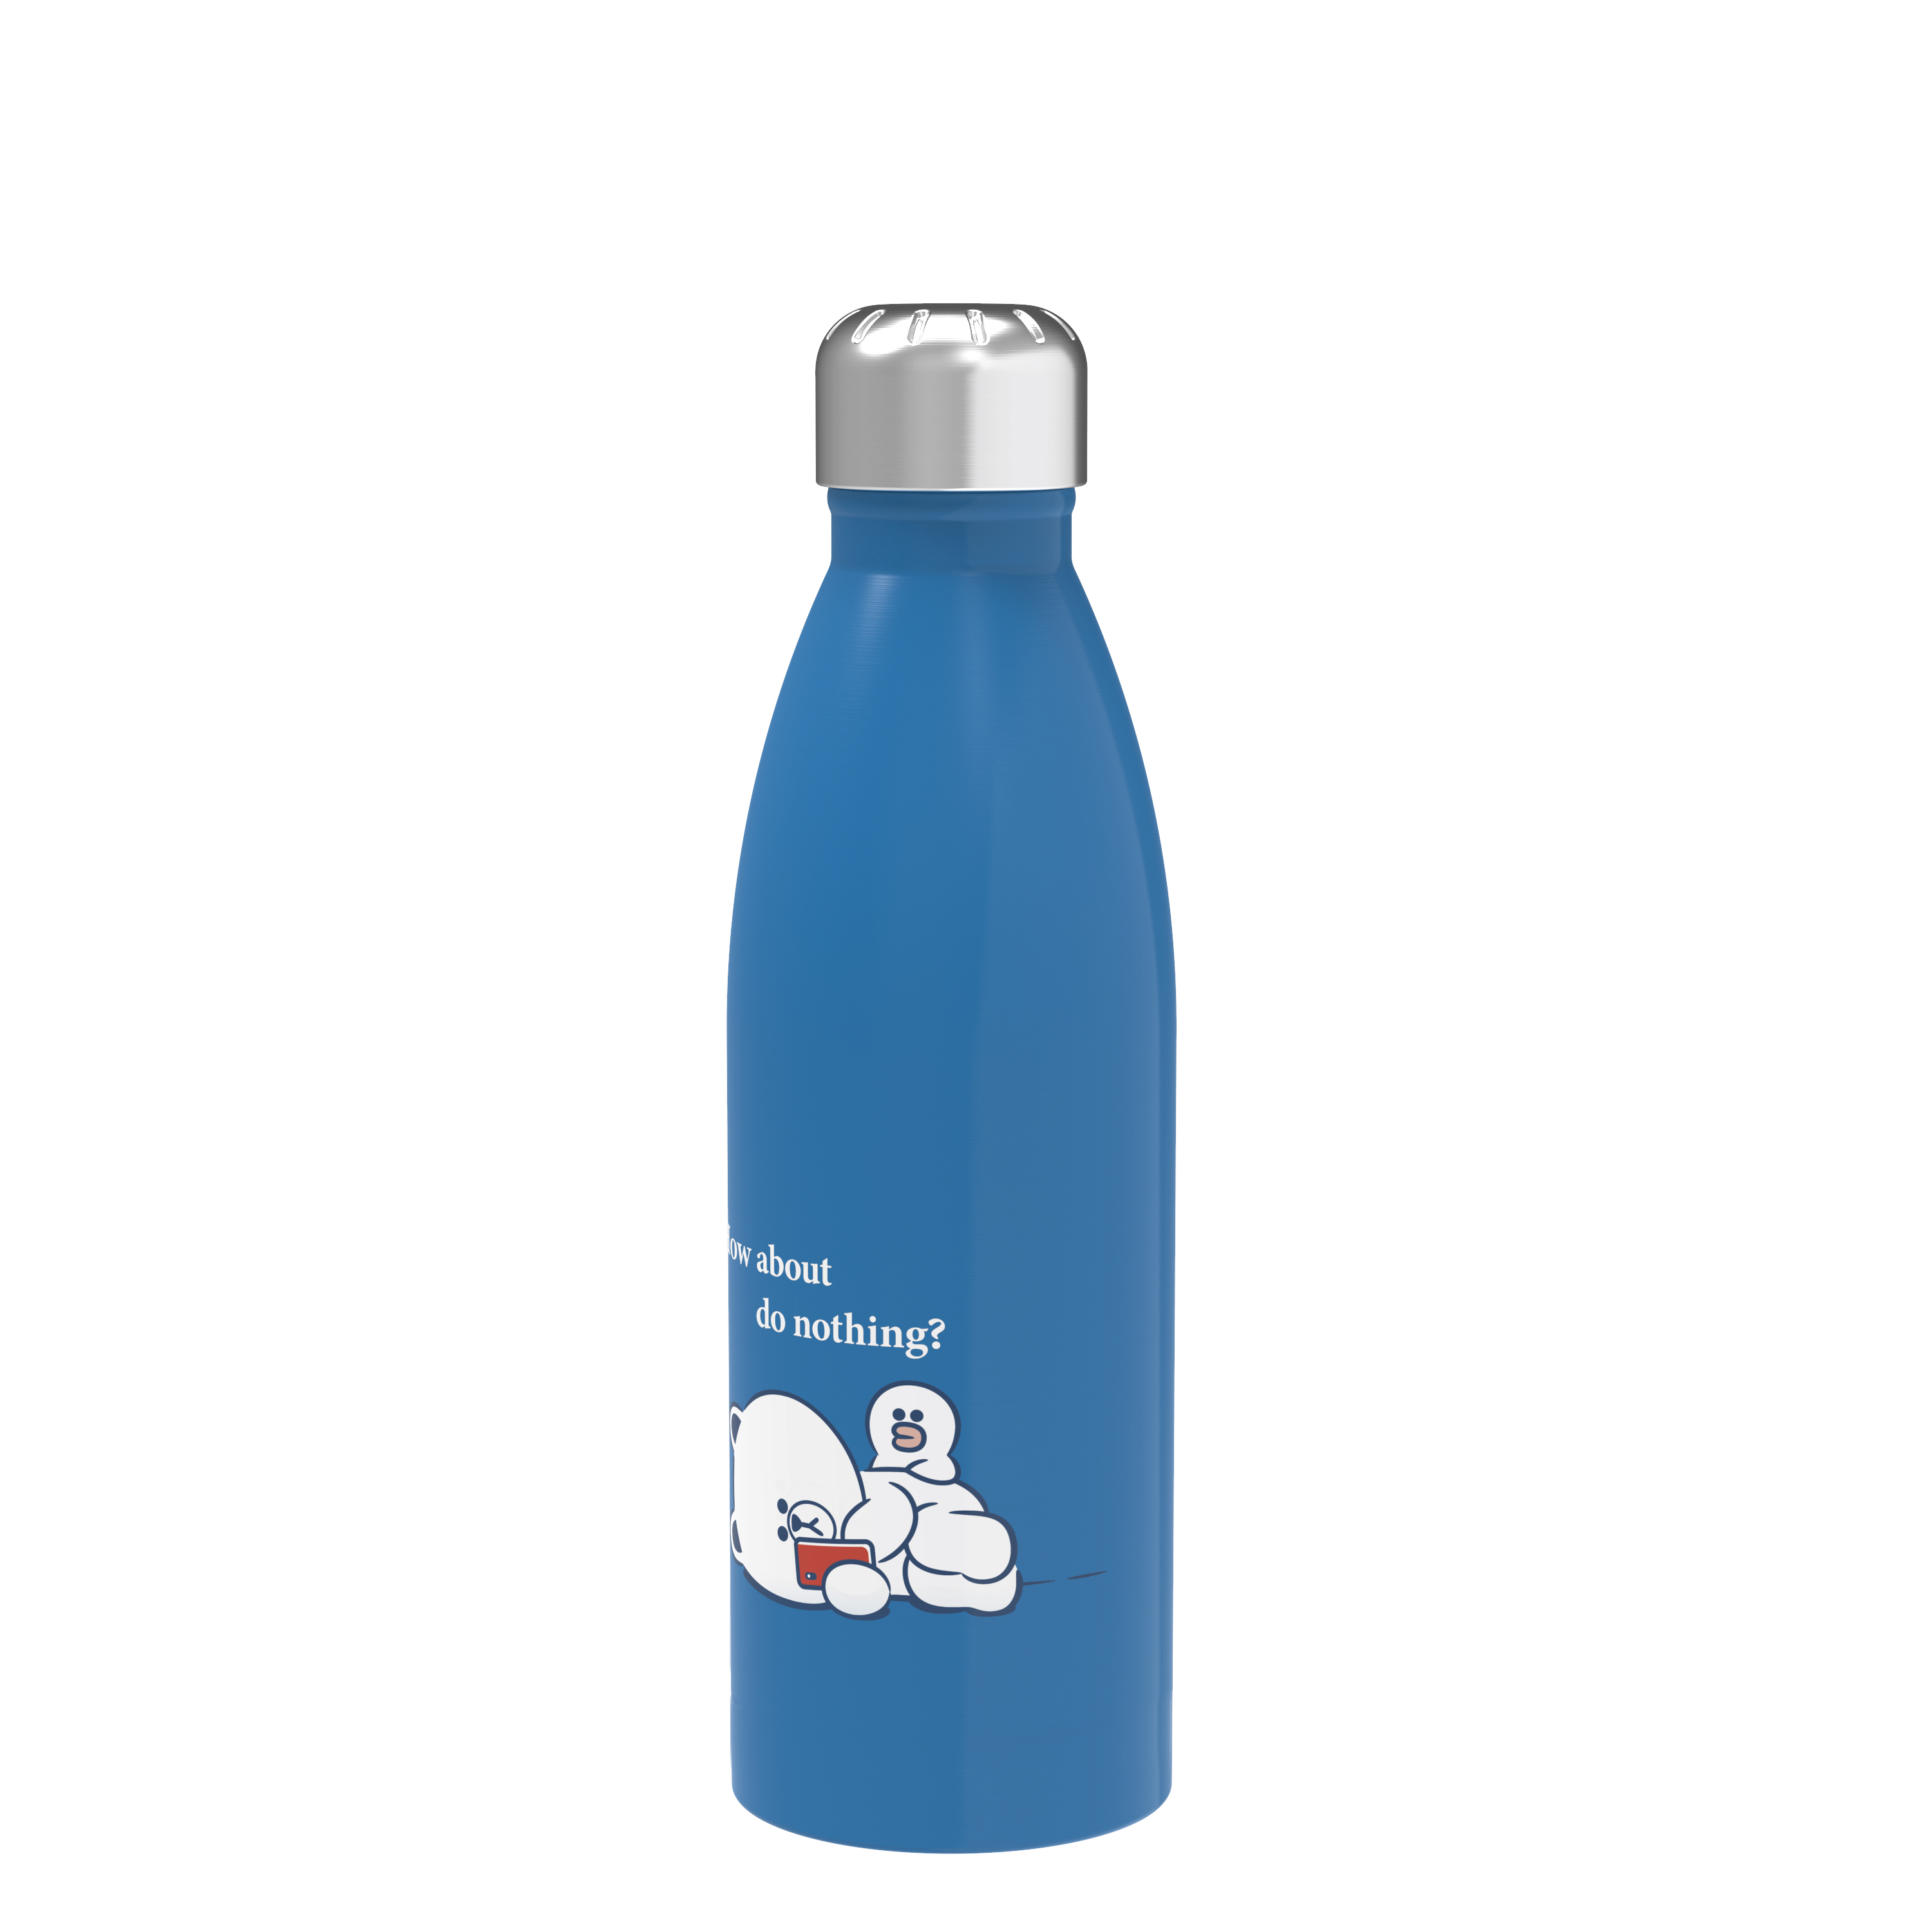 Line Friends 17.5 ounce Vacuum Insulated Stainless Steel Water Bottle, Cuddly Friends slideshow image 3